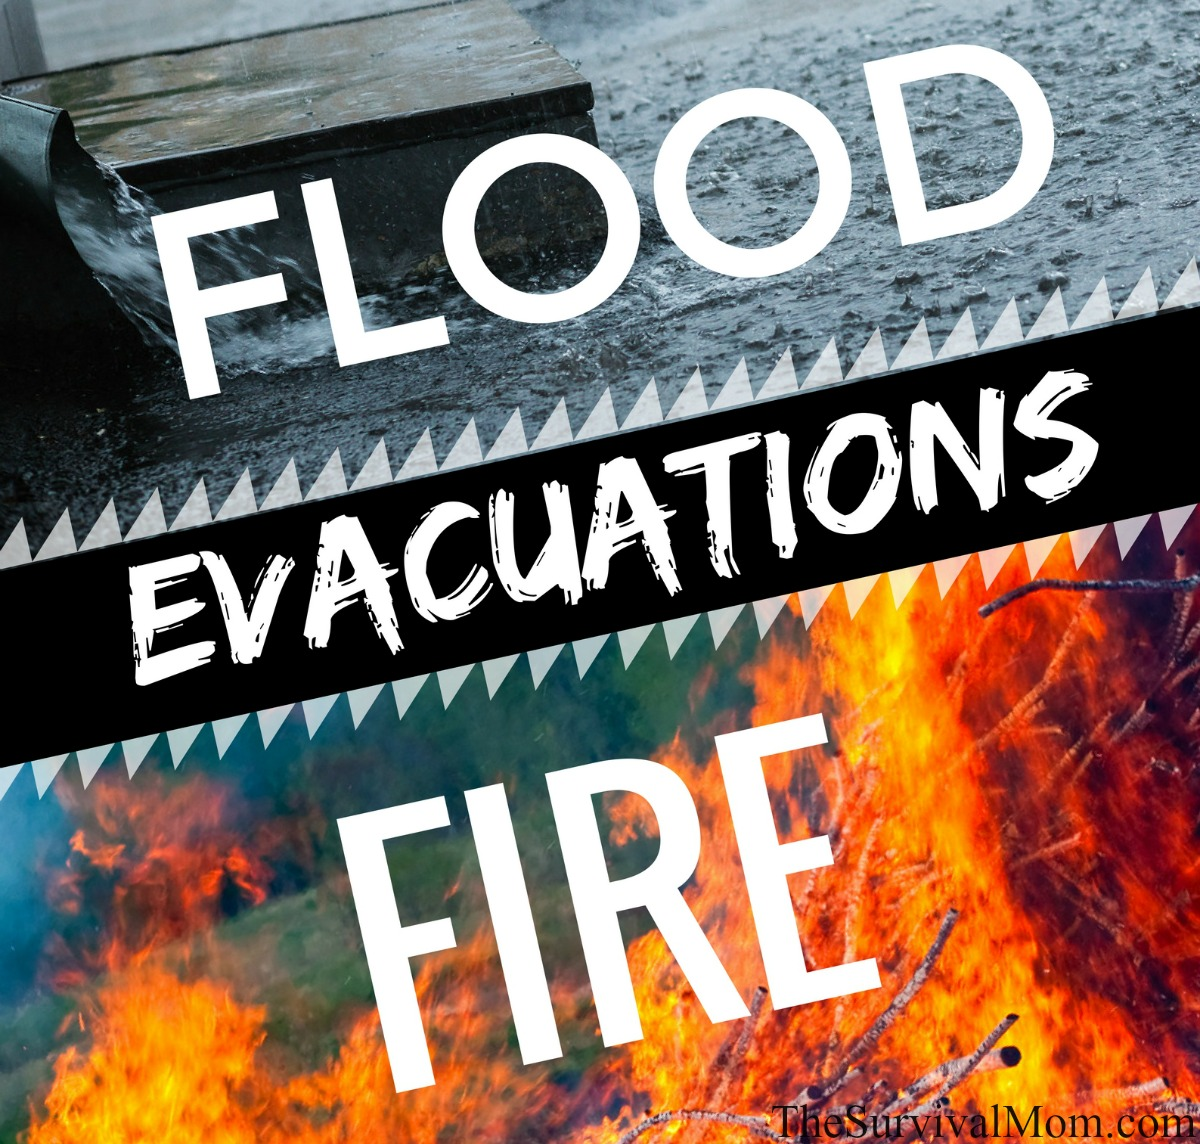 Flood Fire Evacuations